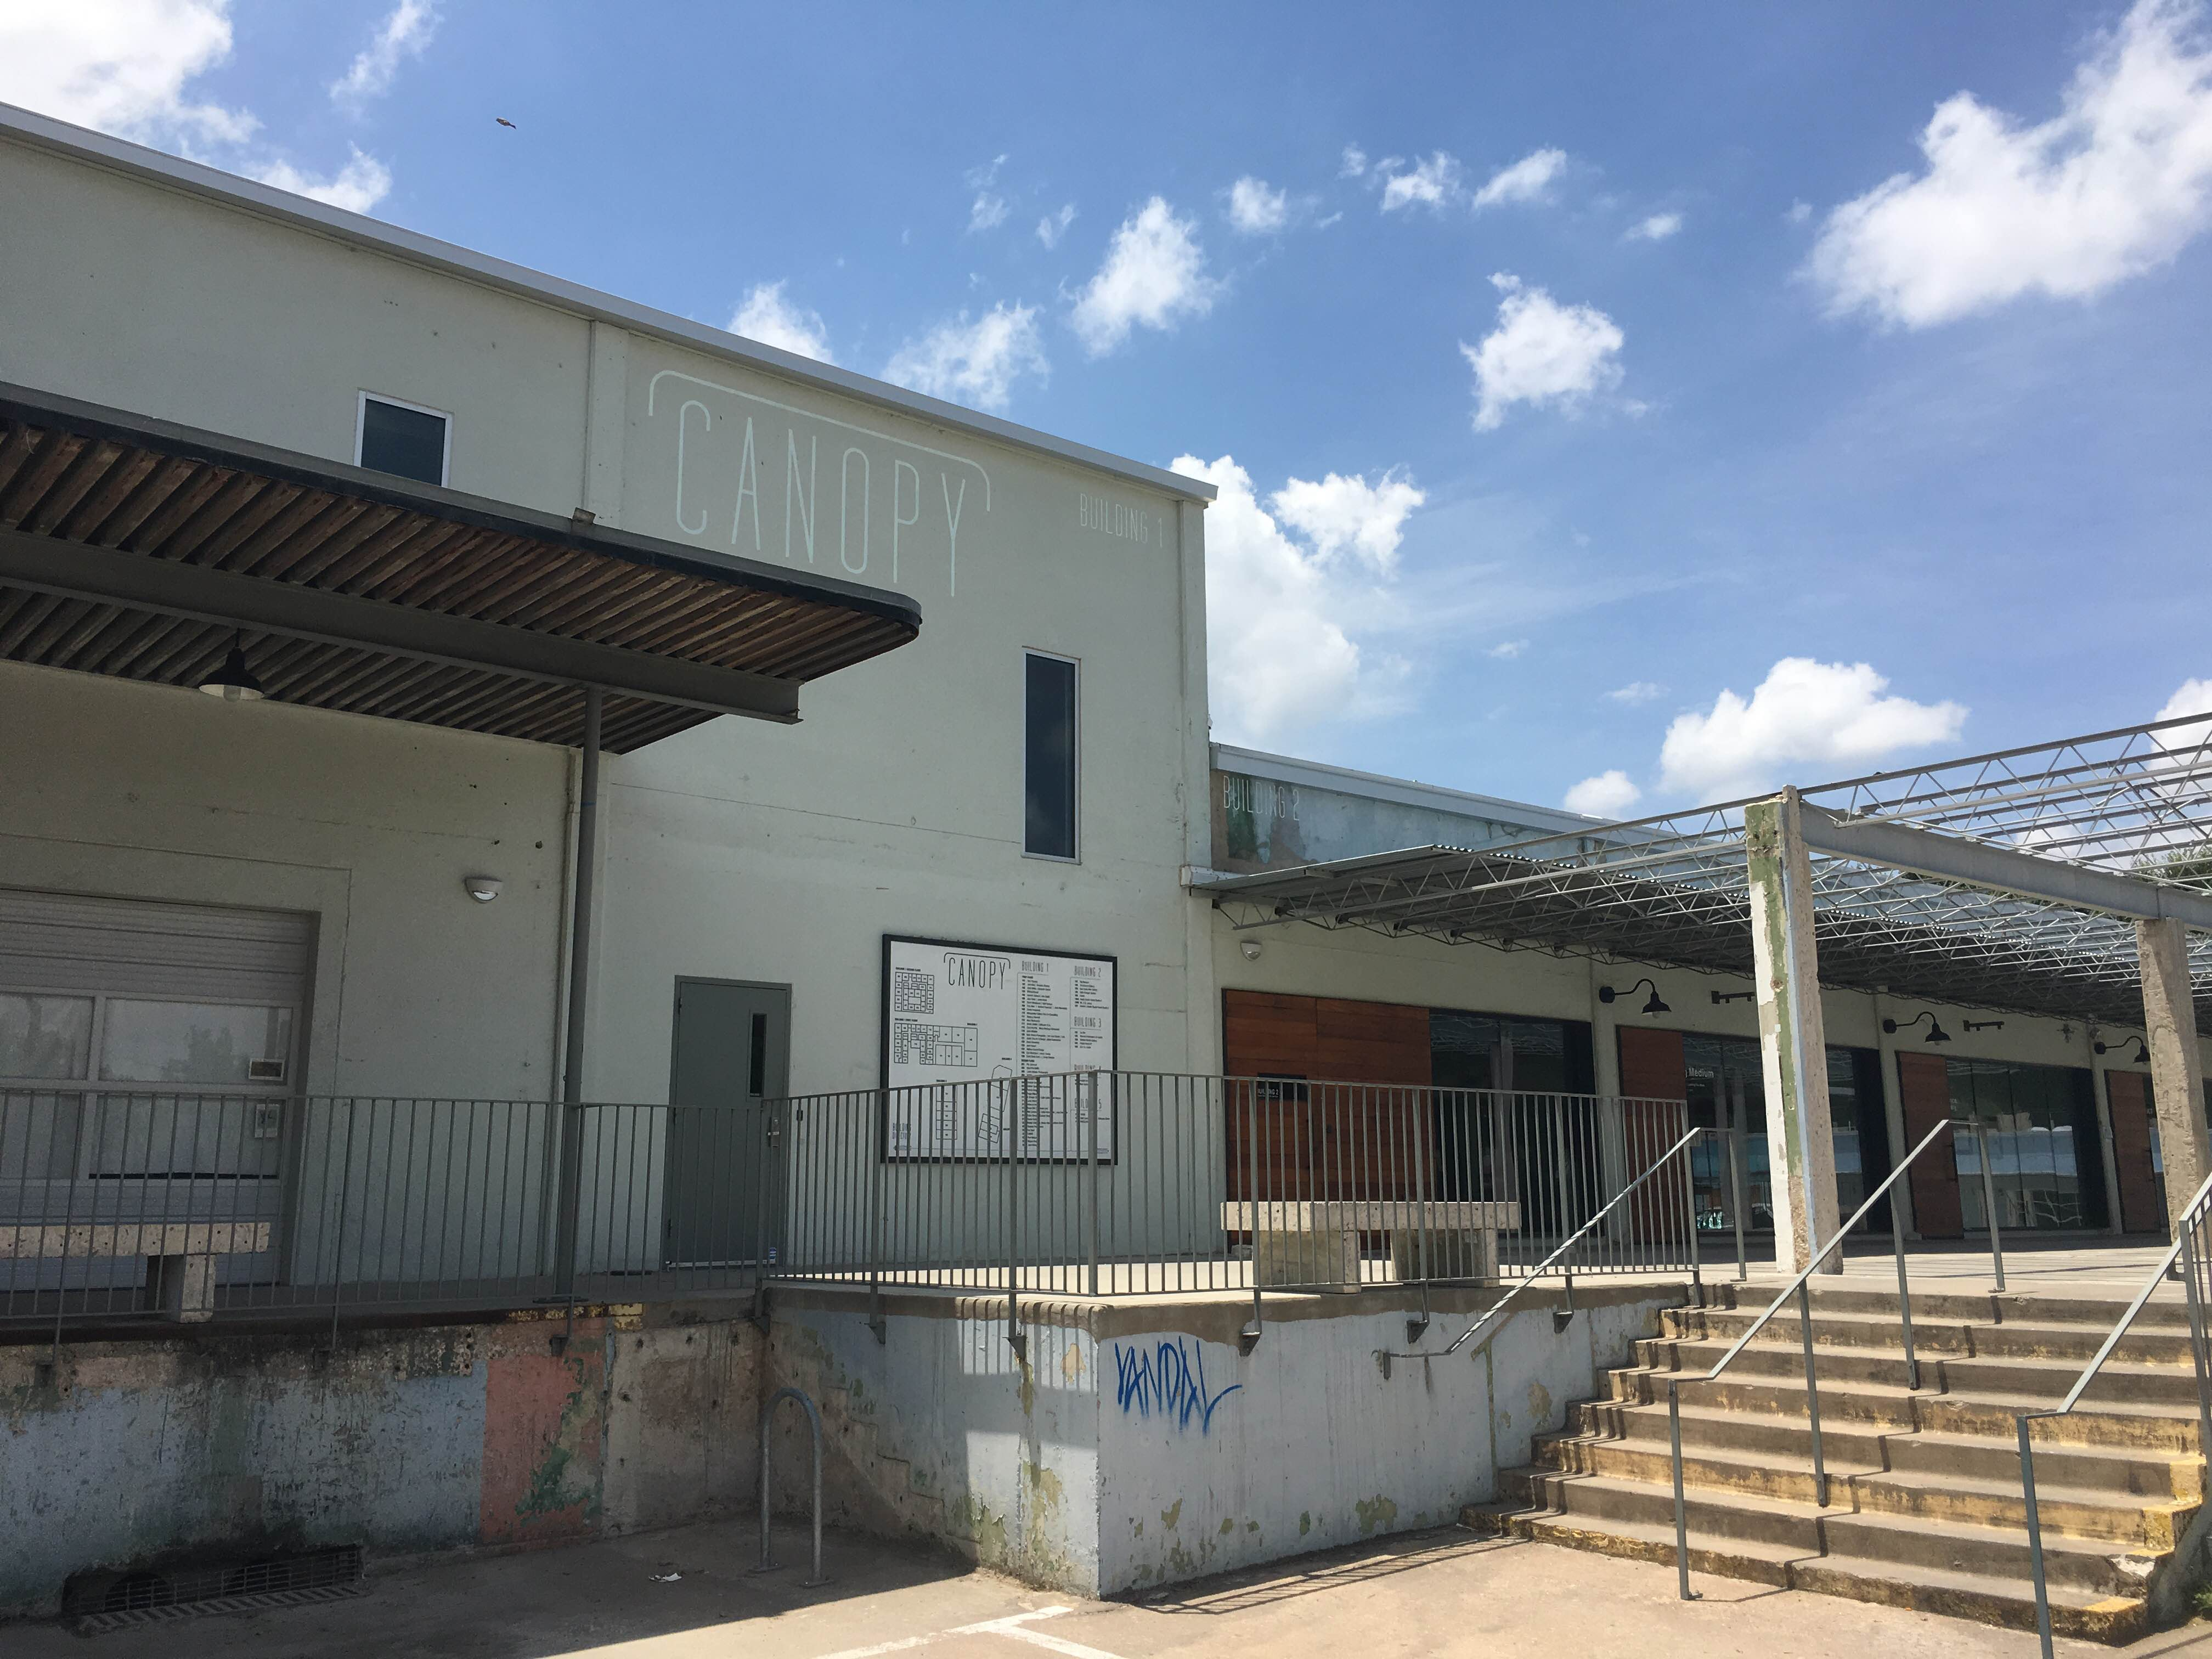 Canopy, located at 916 Springdale Rd, is home to Big Medium and is considered by some to be a pillar of the East Austin Art scene.